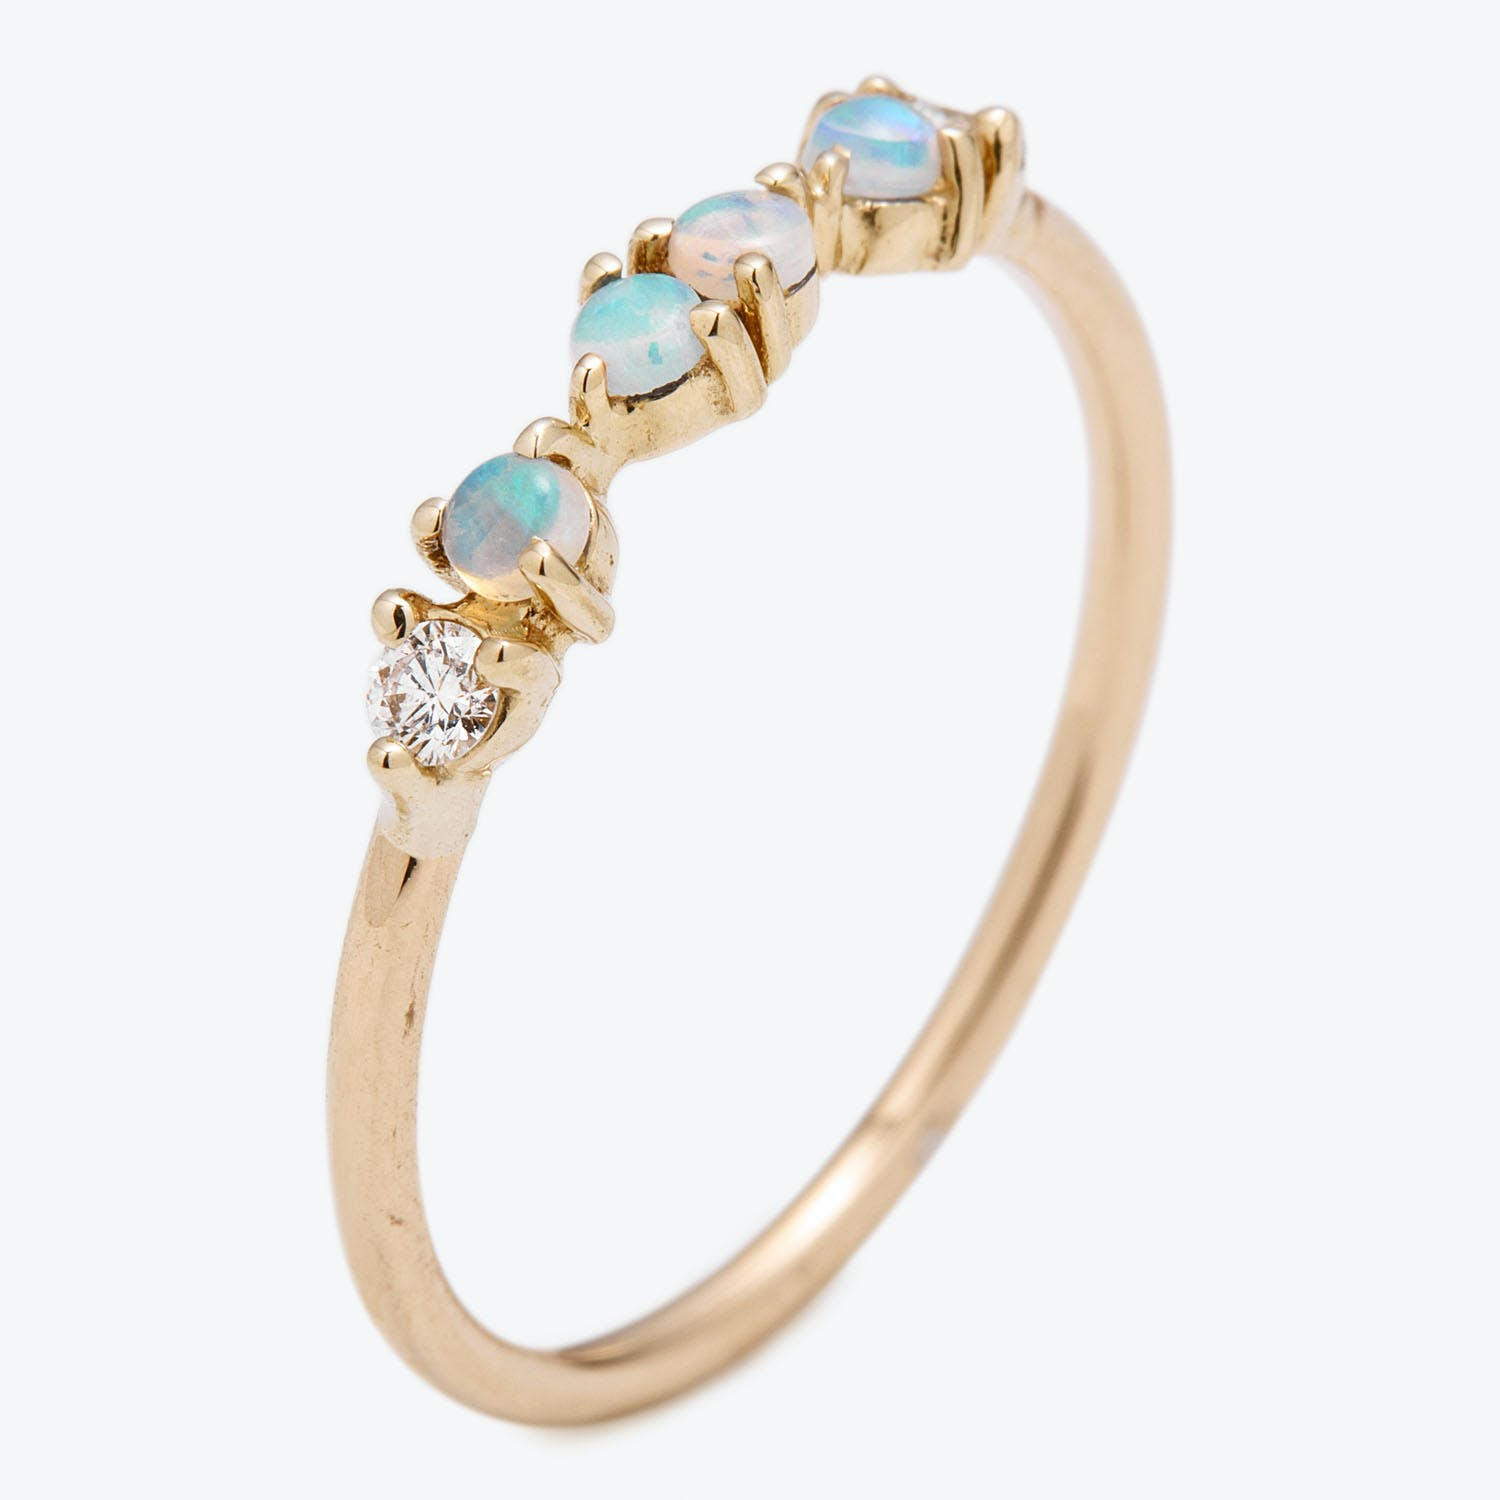 Demipaired Opal & Diamond Ring